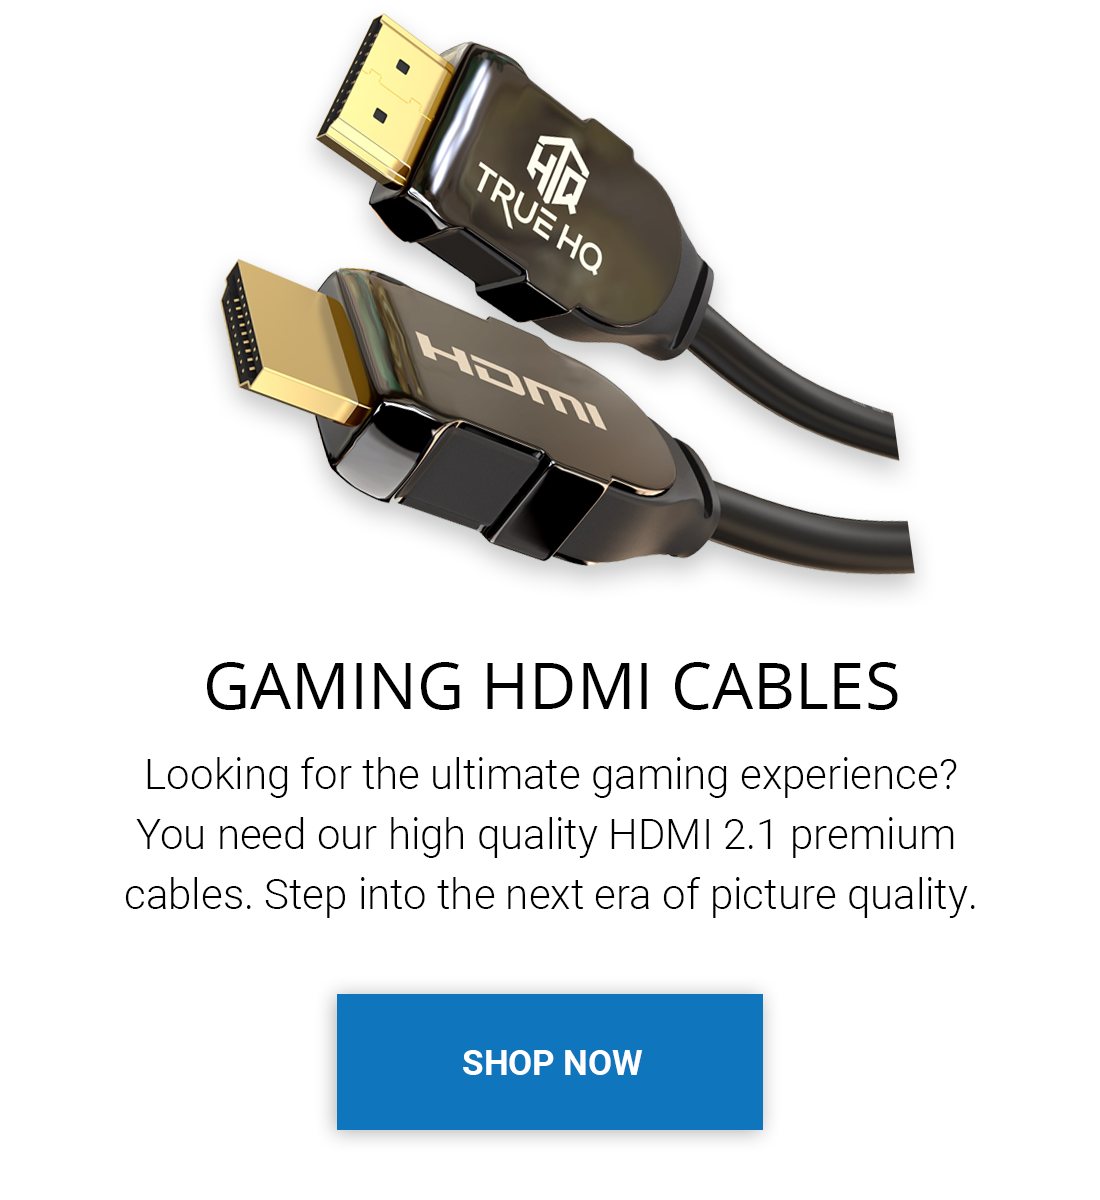 HDMI 2.1 Cable for Enhanced Gaming. 4K 8K 60hz 120hz 144hzPS4, PS5, Xbox One Series X. OLED TV. Game Mode VRR. Variable Refresh rate. Ultimate gaming experience. No lag, higher refresh rate.